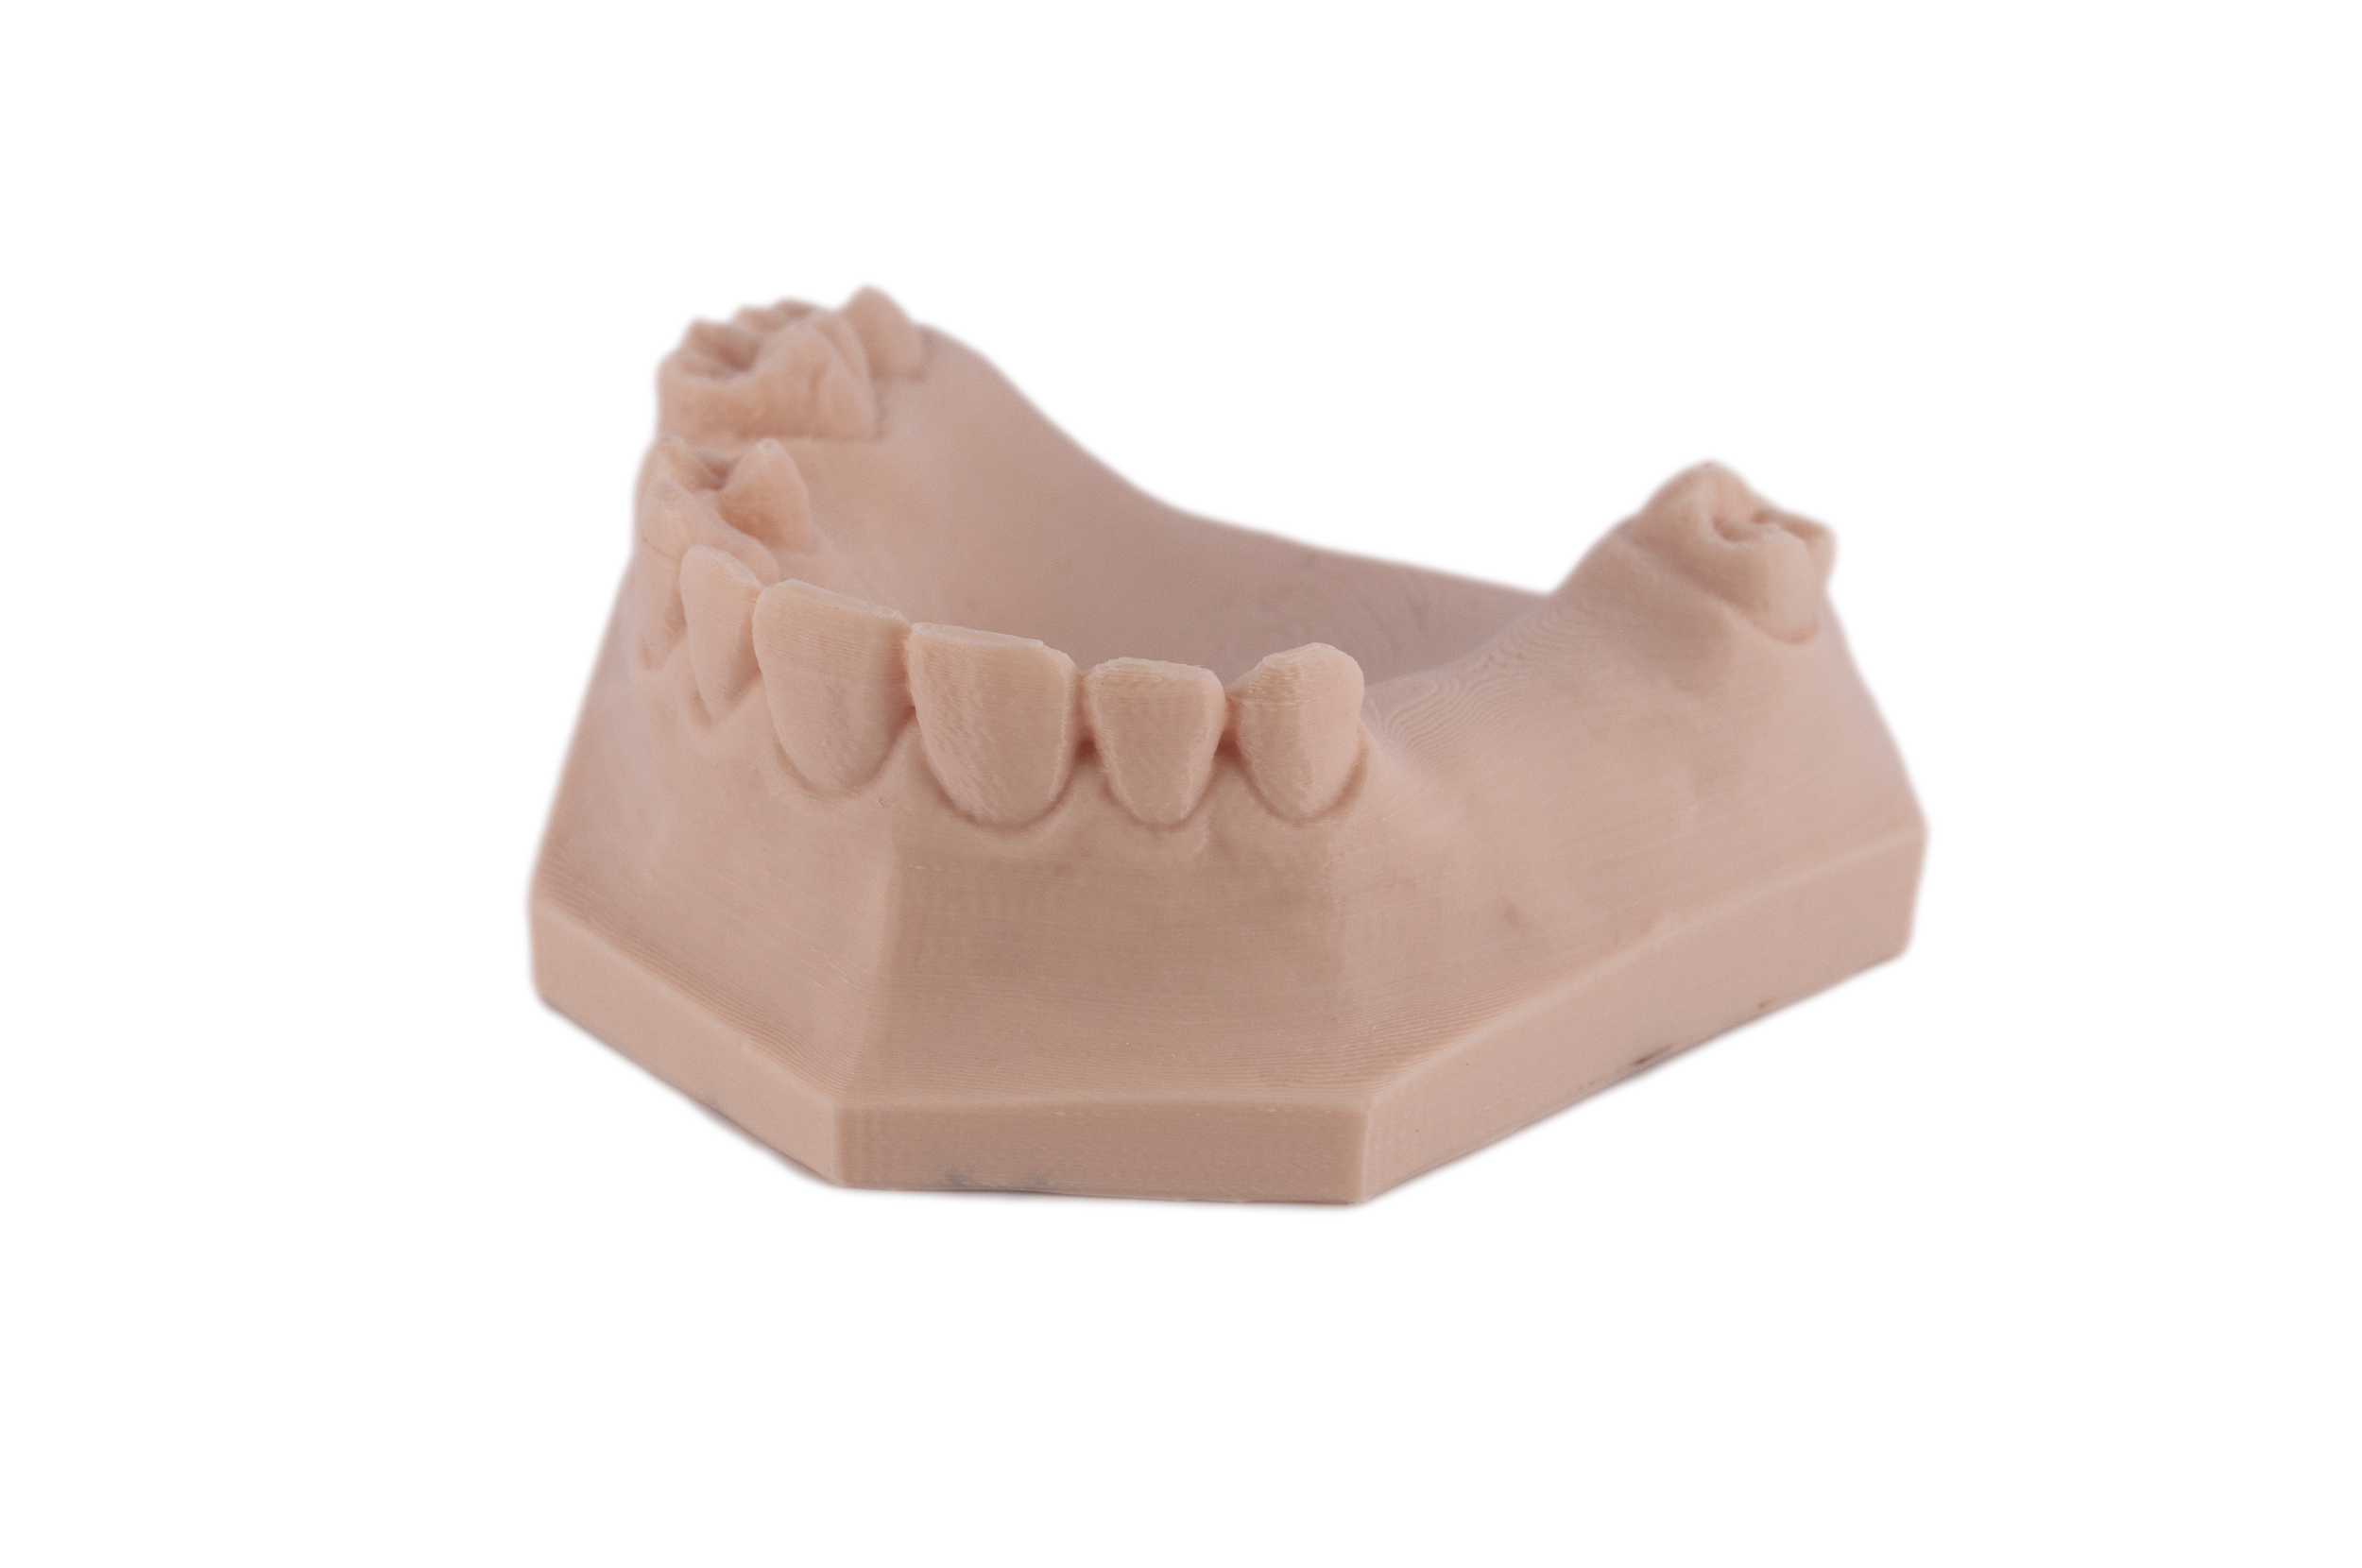 Arfona Dental Model.png